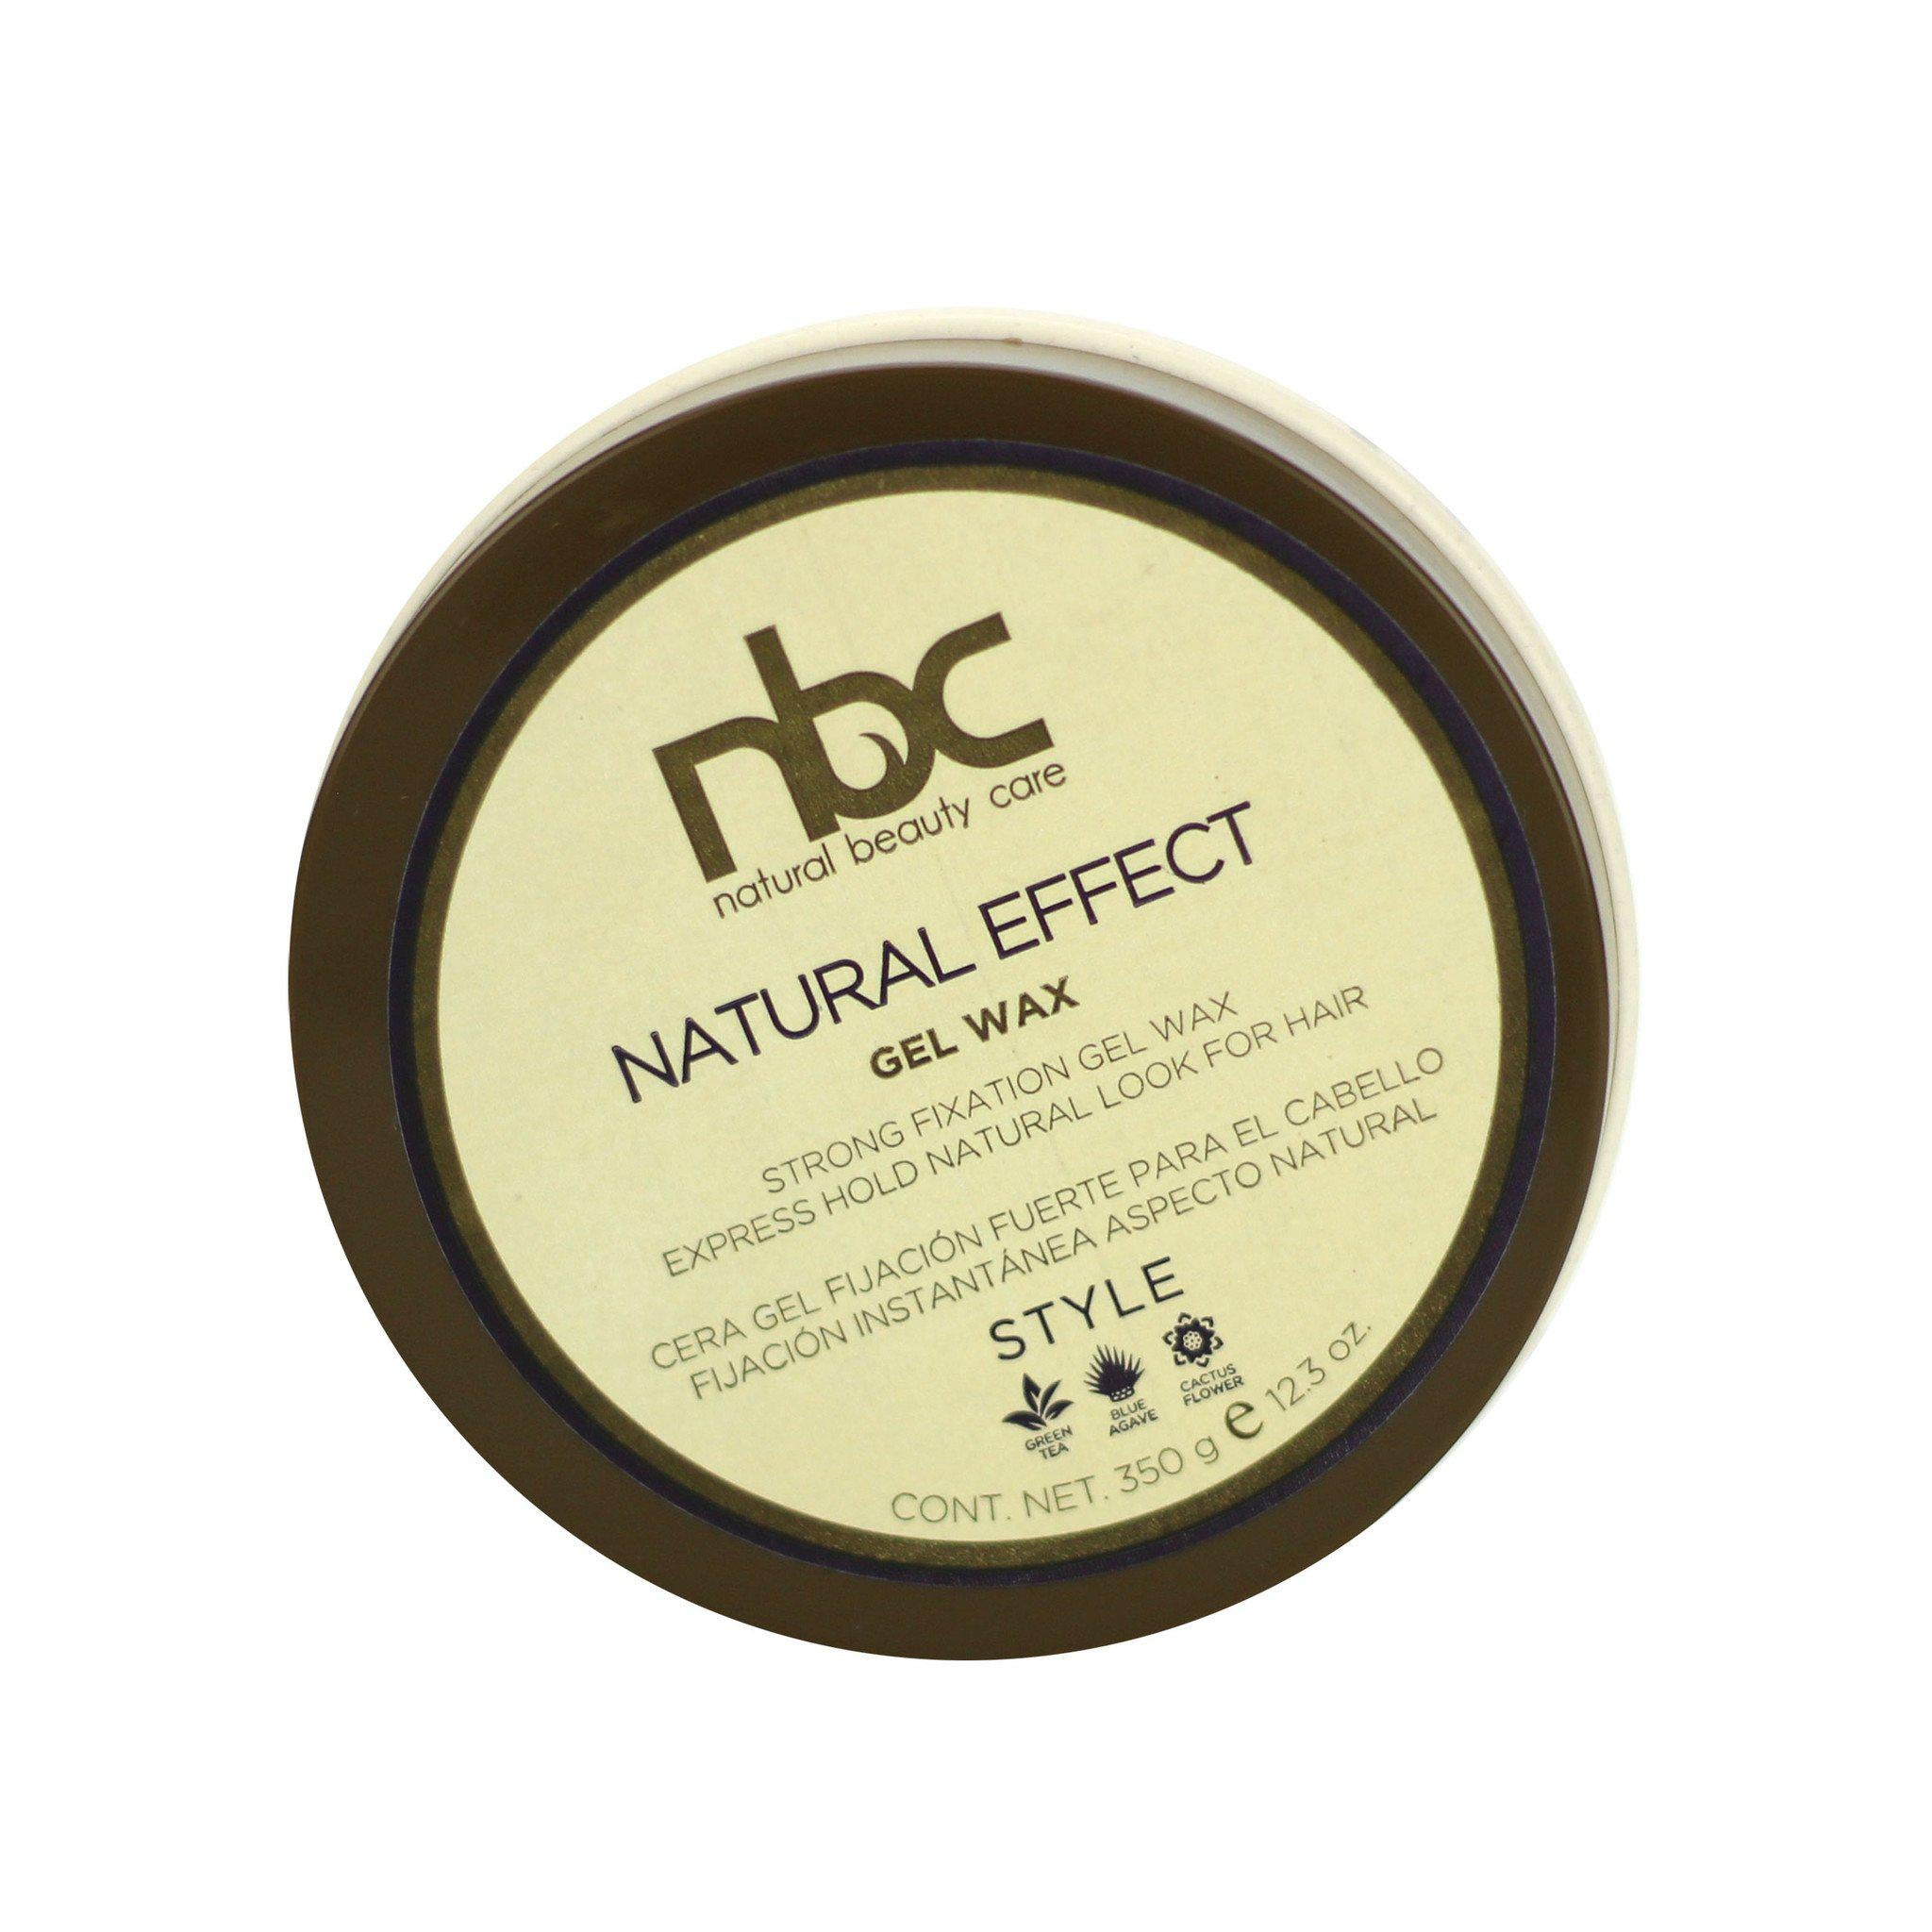 NBC CERA NATURAL EFFECT 350 G